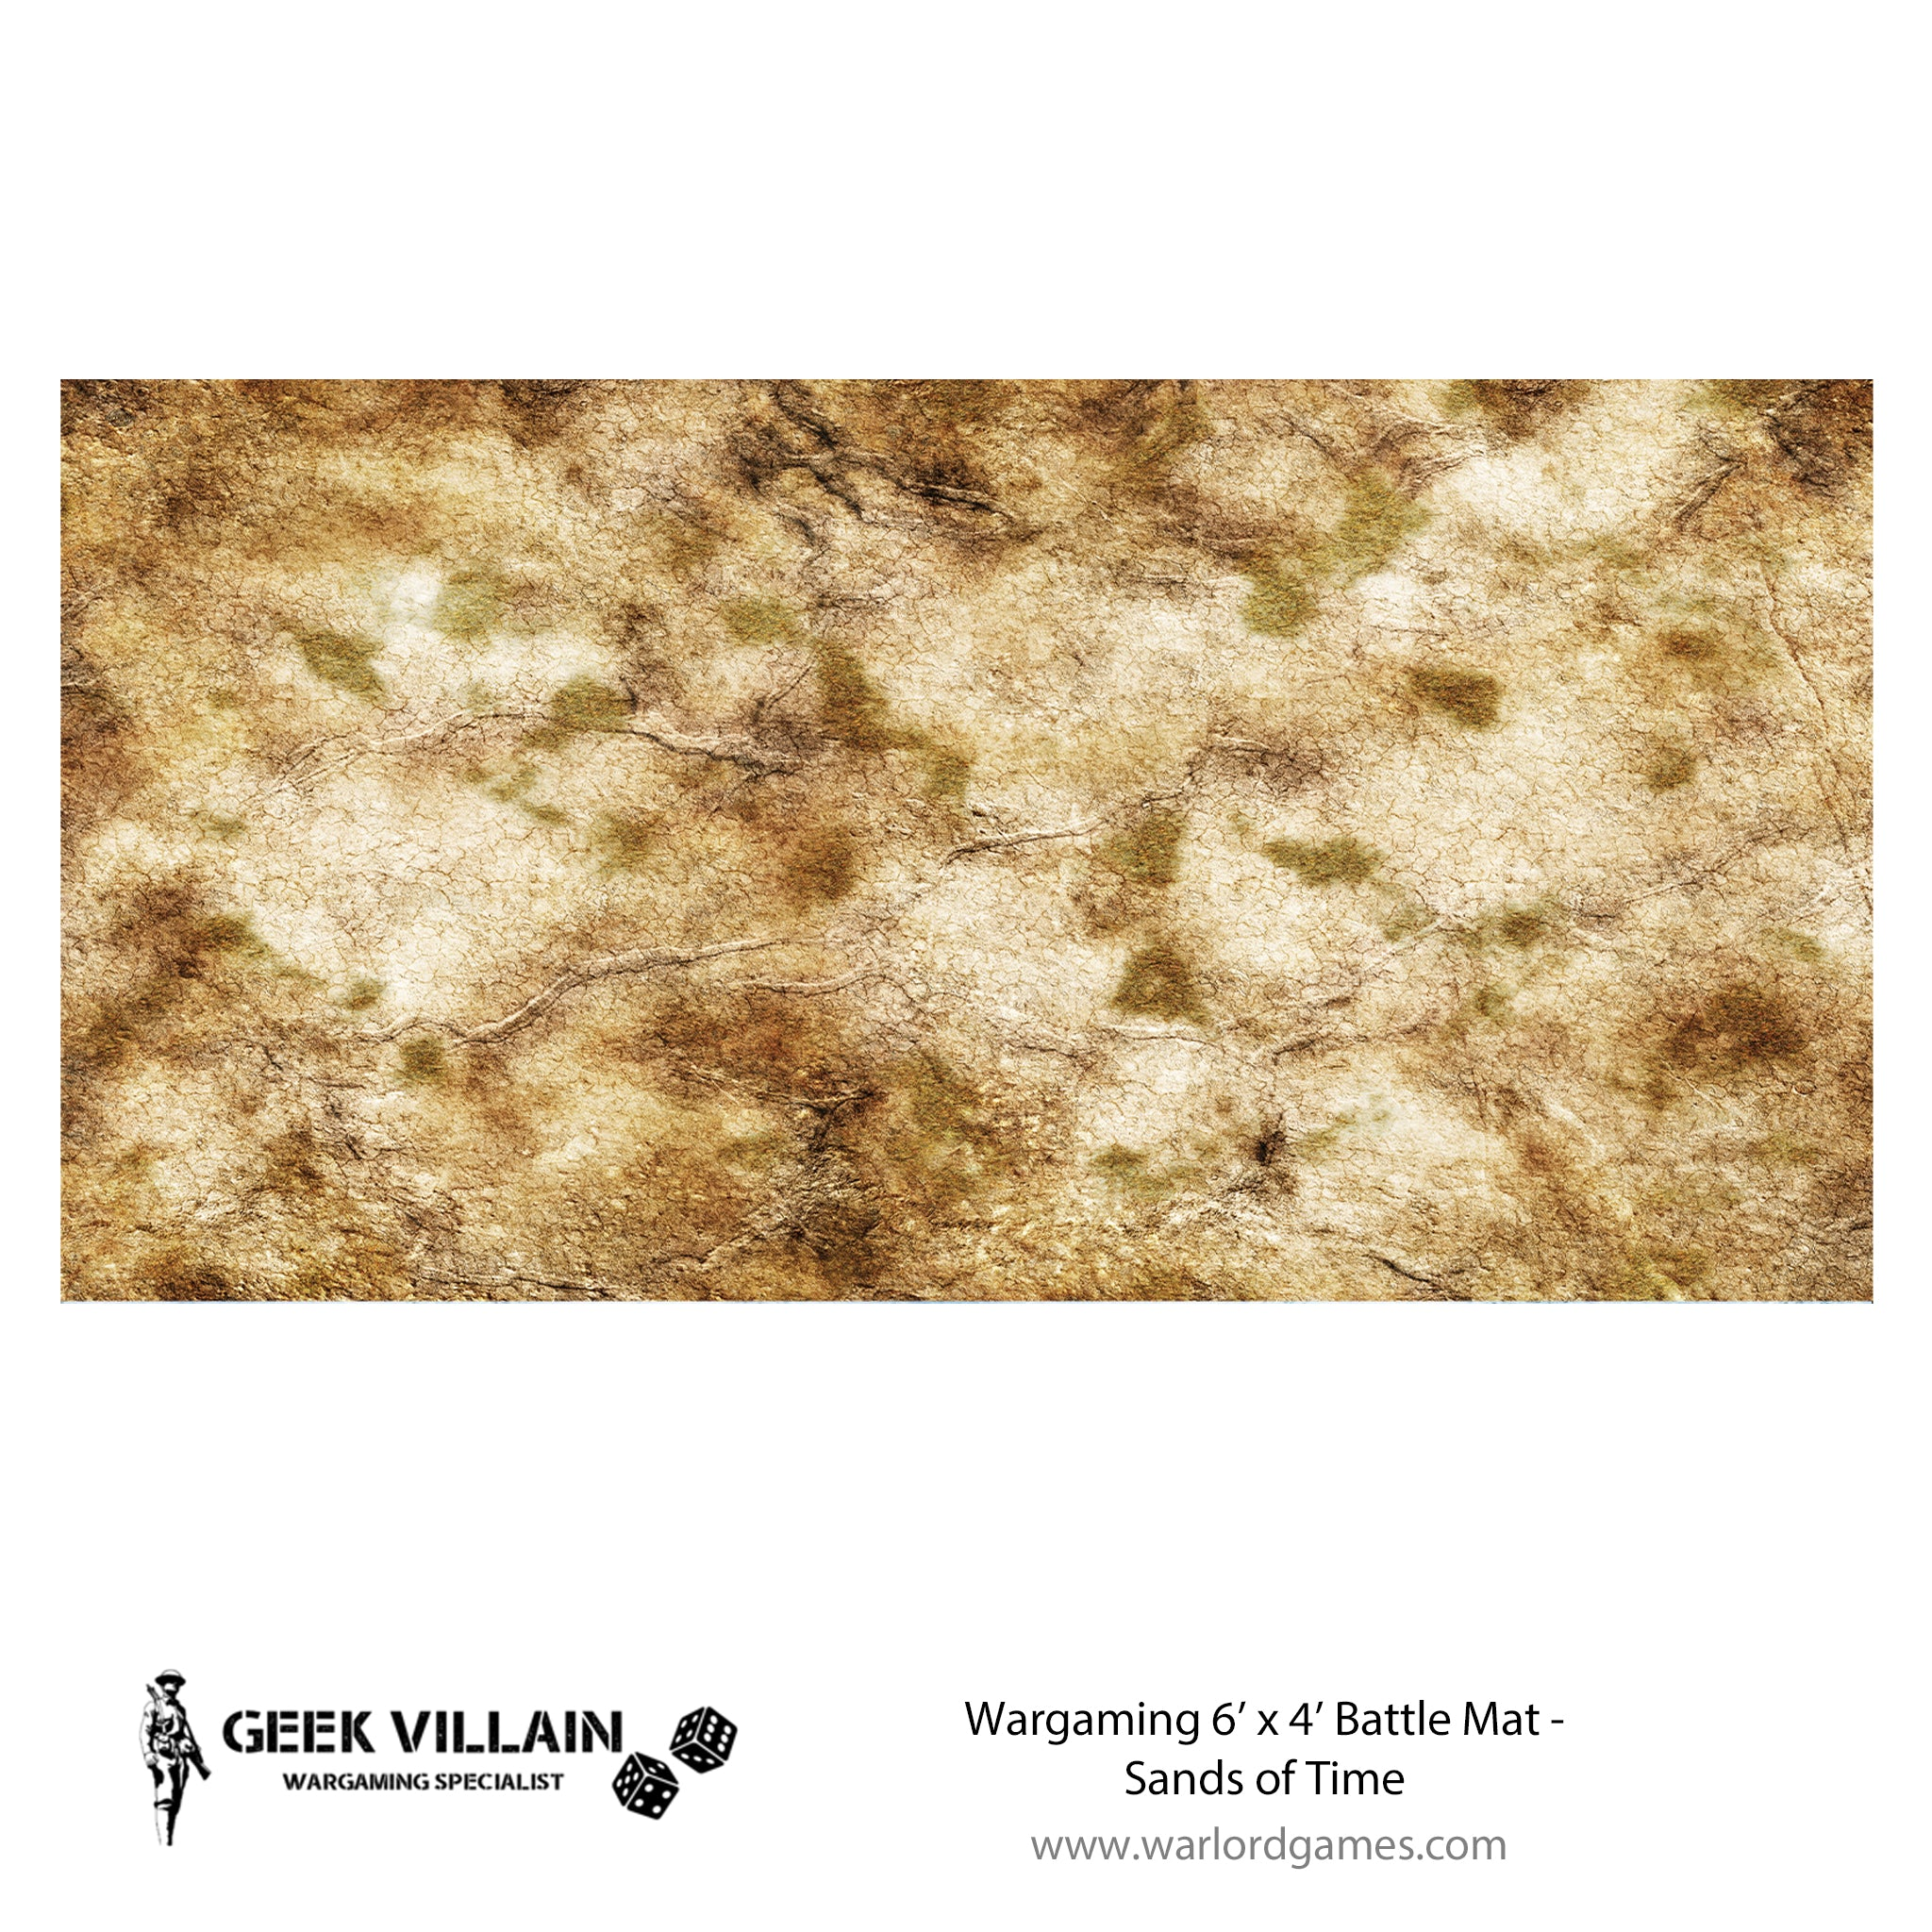 Wargaming Battle Mat 6x4 Sands of Time